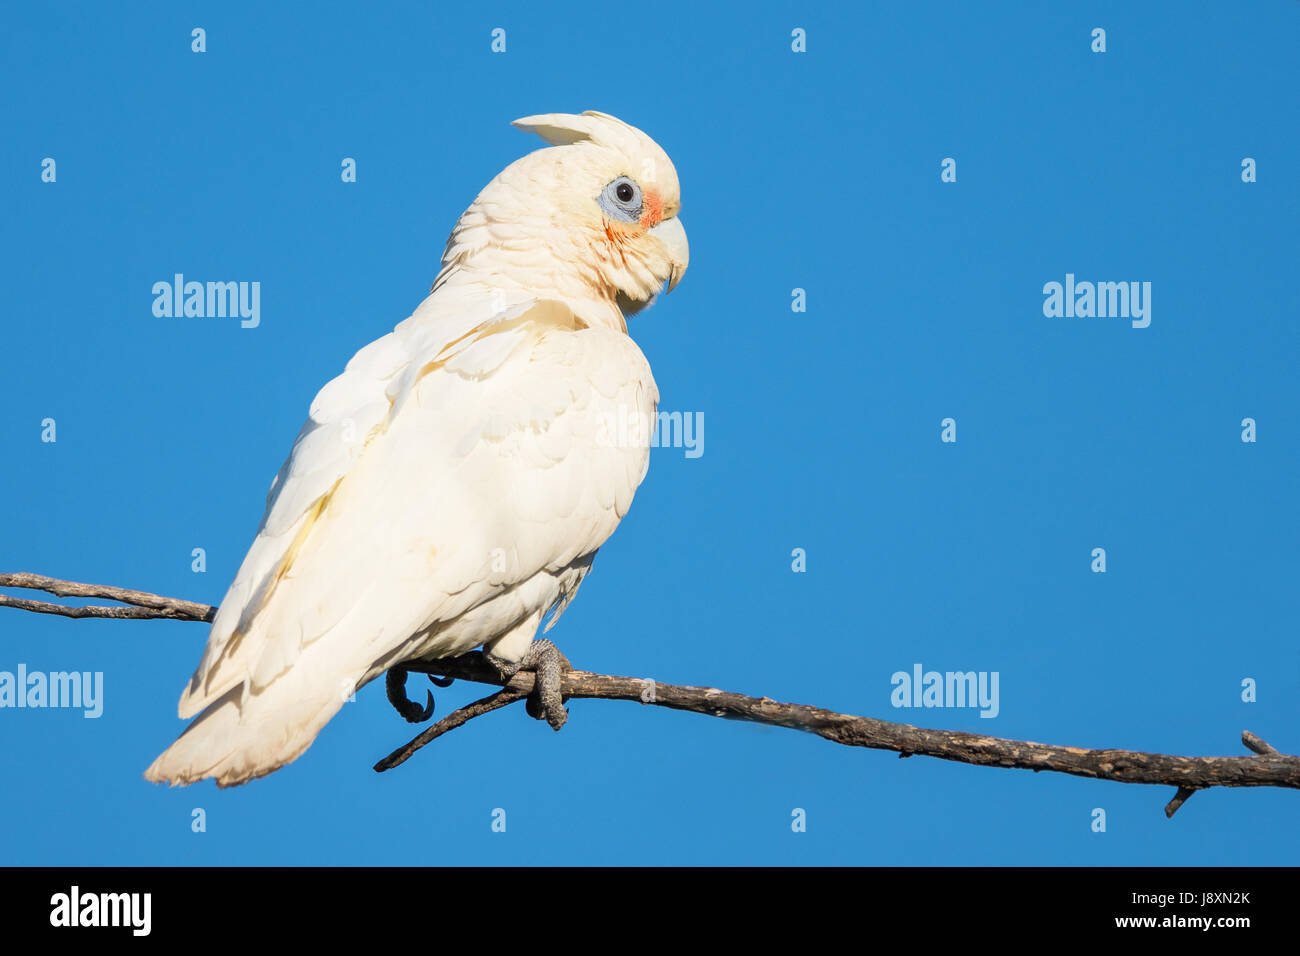 A Little Corella perched on a branch at Herdsman Lake in Perth, Western Australia. - Stock Image